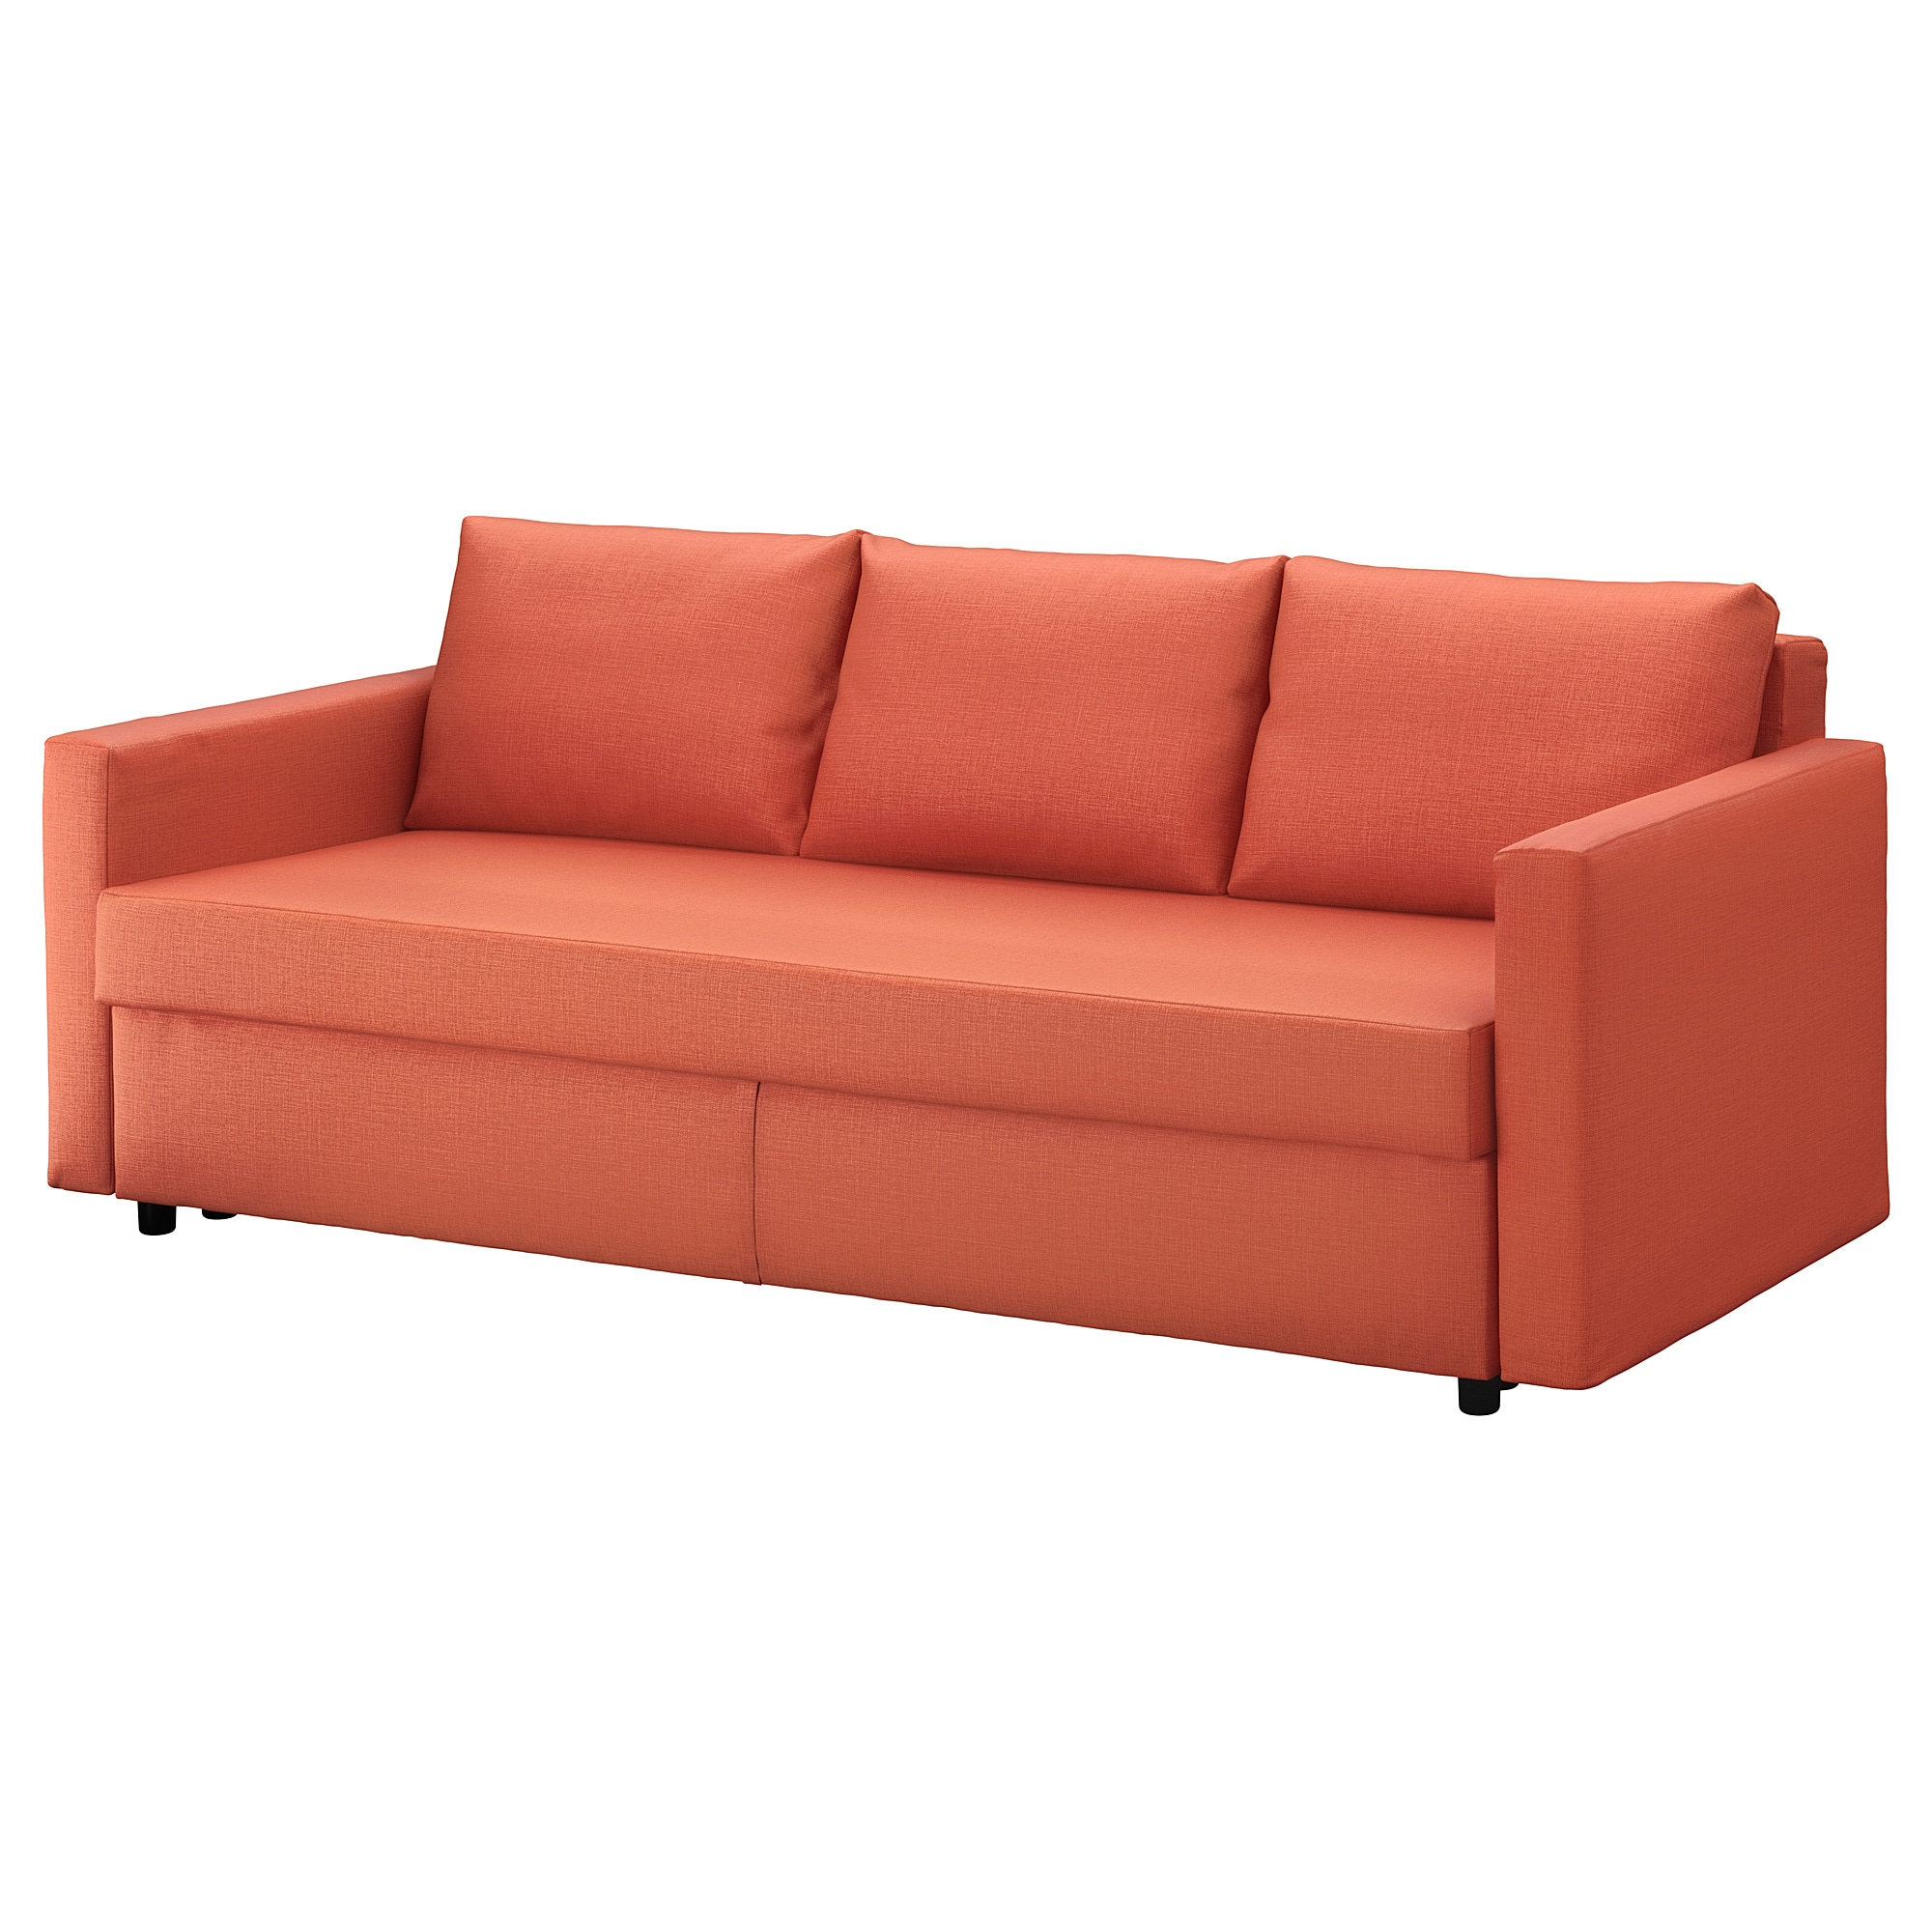 Sofa Bed Couch Friheten Sleeper Sofa Skiftebo Dark Orange